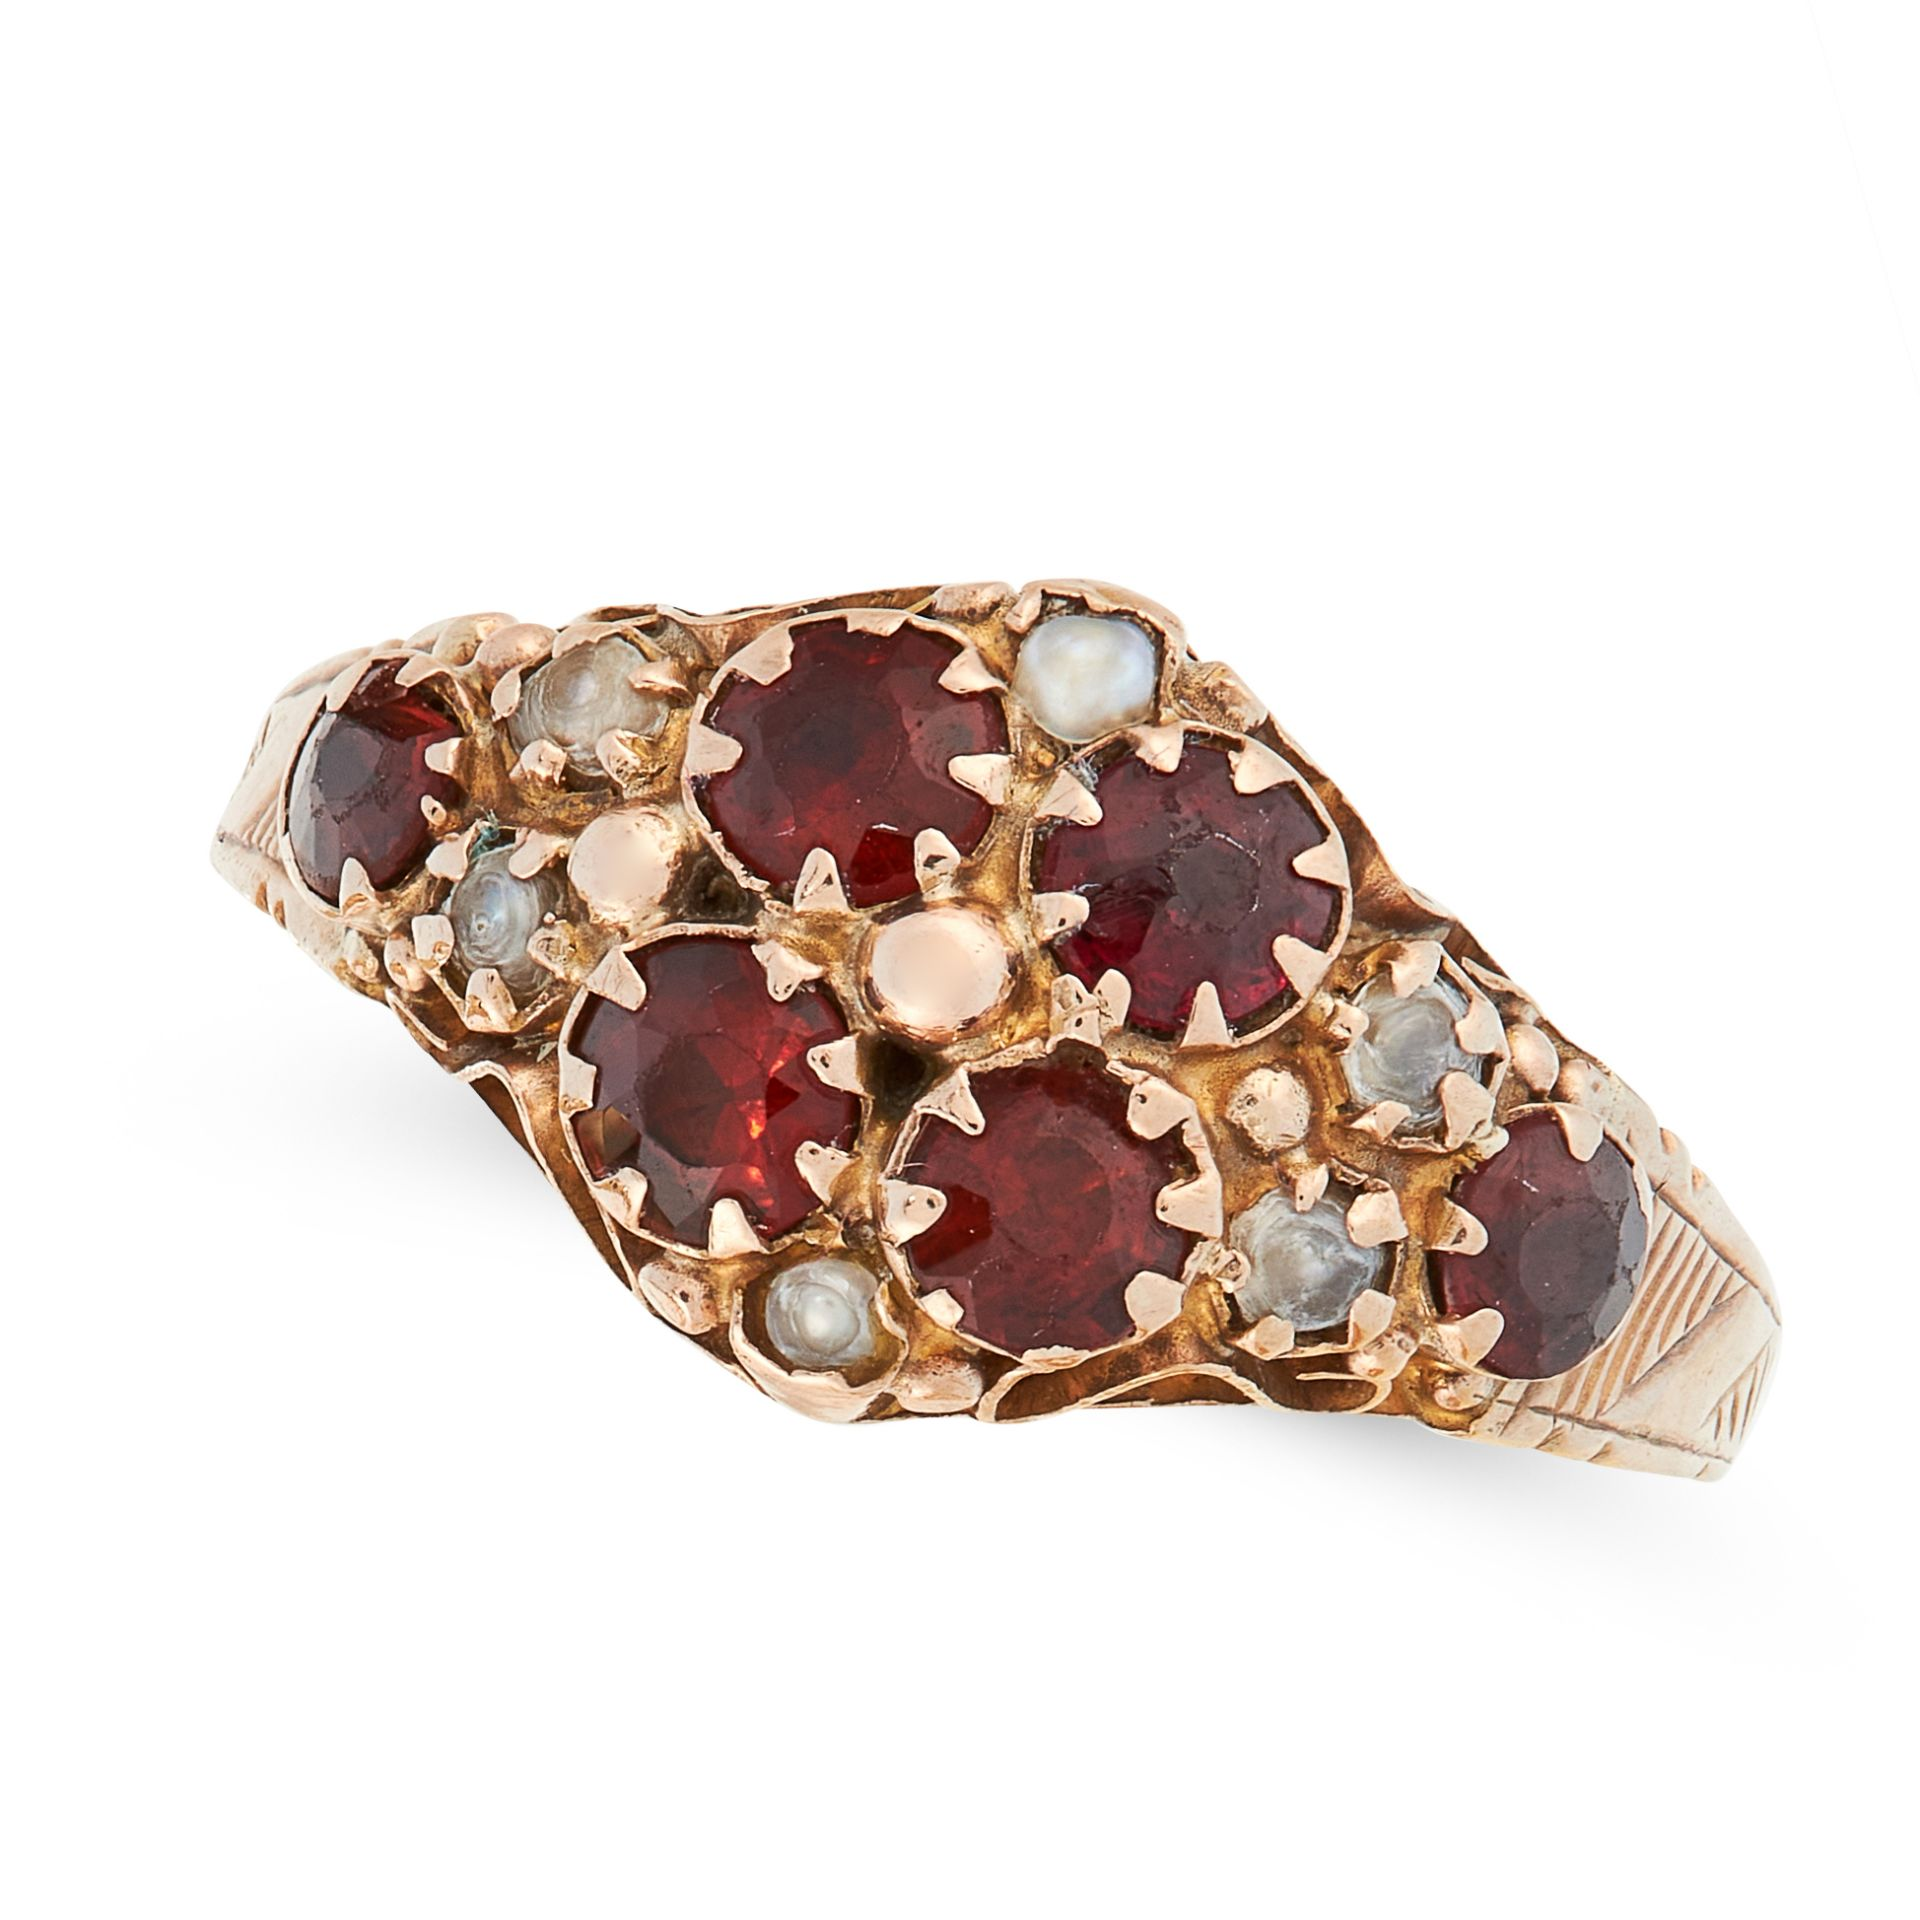 AN ANTIQUE GARNET AND PEARL RING in 9ct yellow gold, the face is set with a cluster of round cut